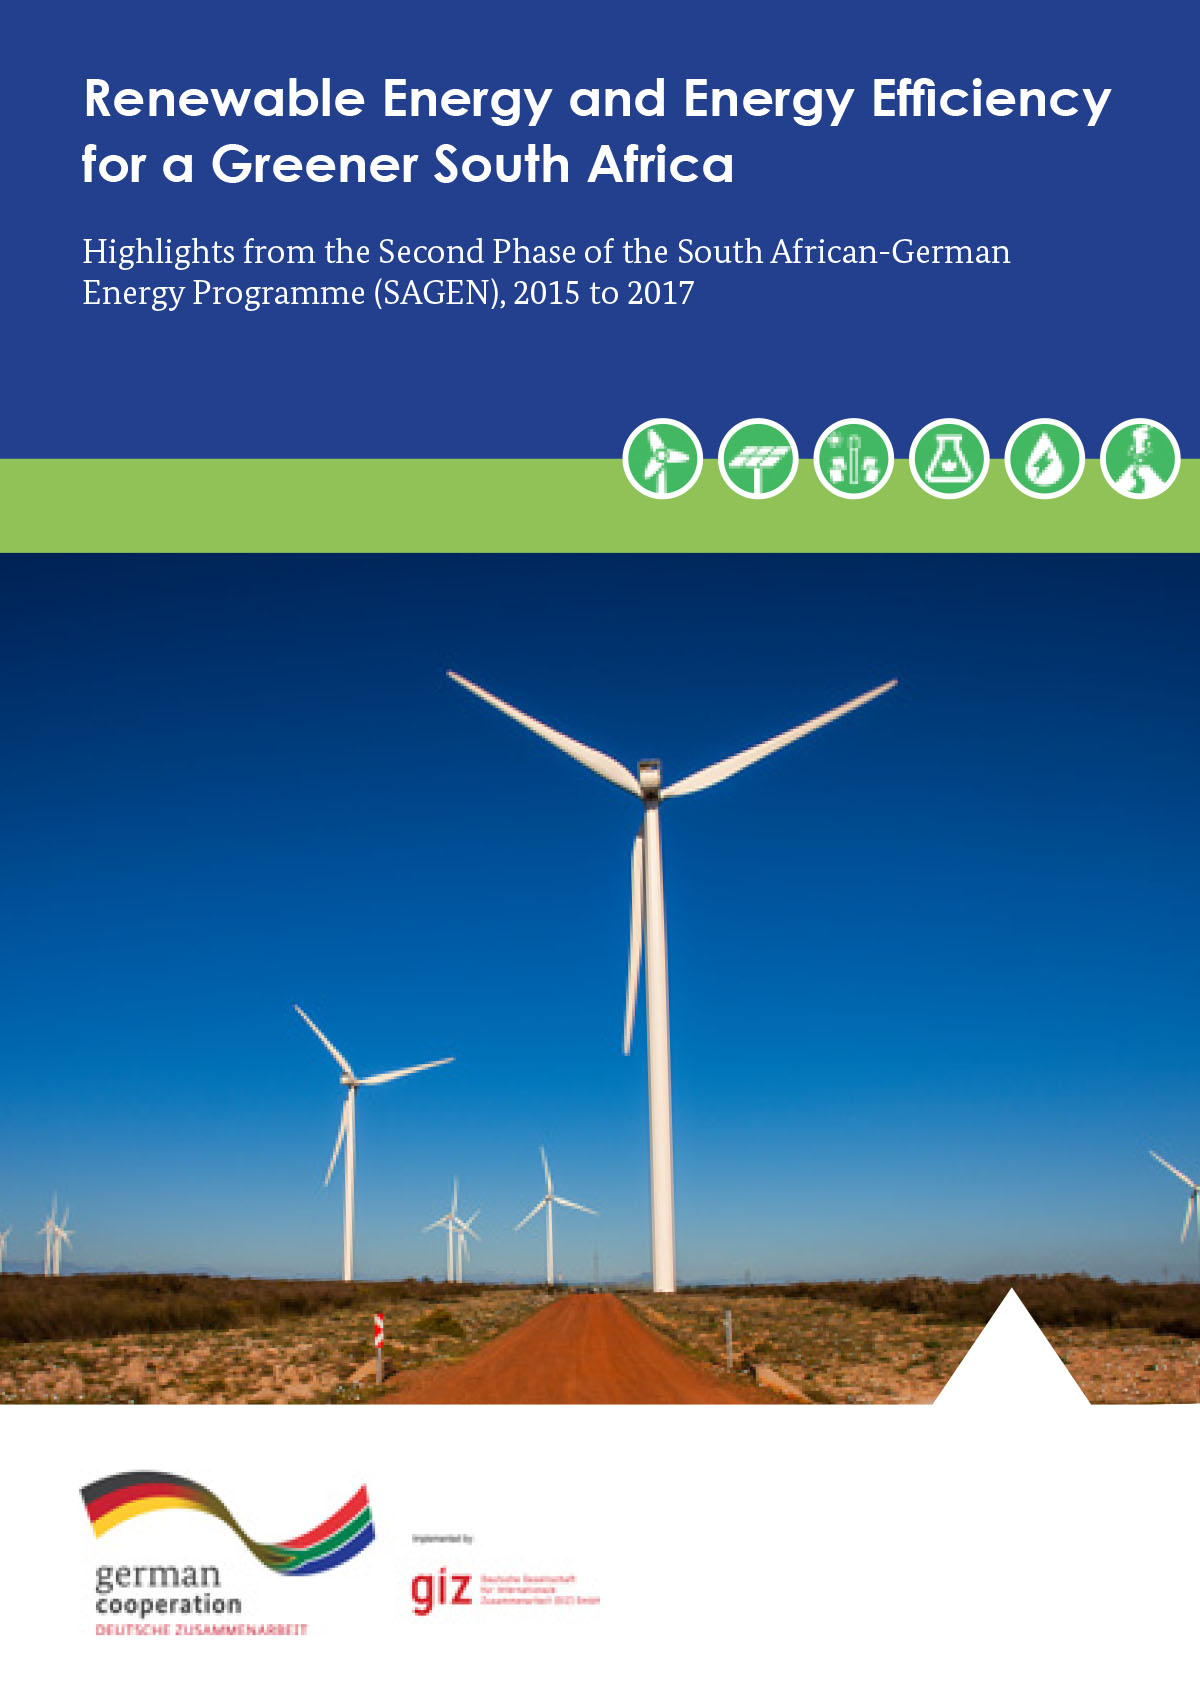 Renewable Energy and Energy Efficiency for a Greener South Africa: Highlights from the 2nd phase of SAGEN